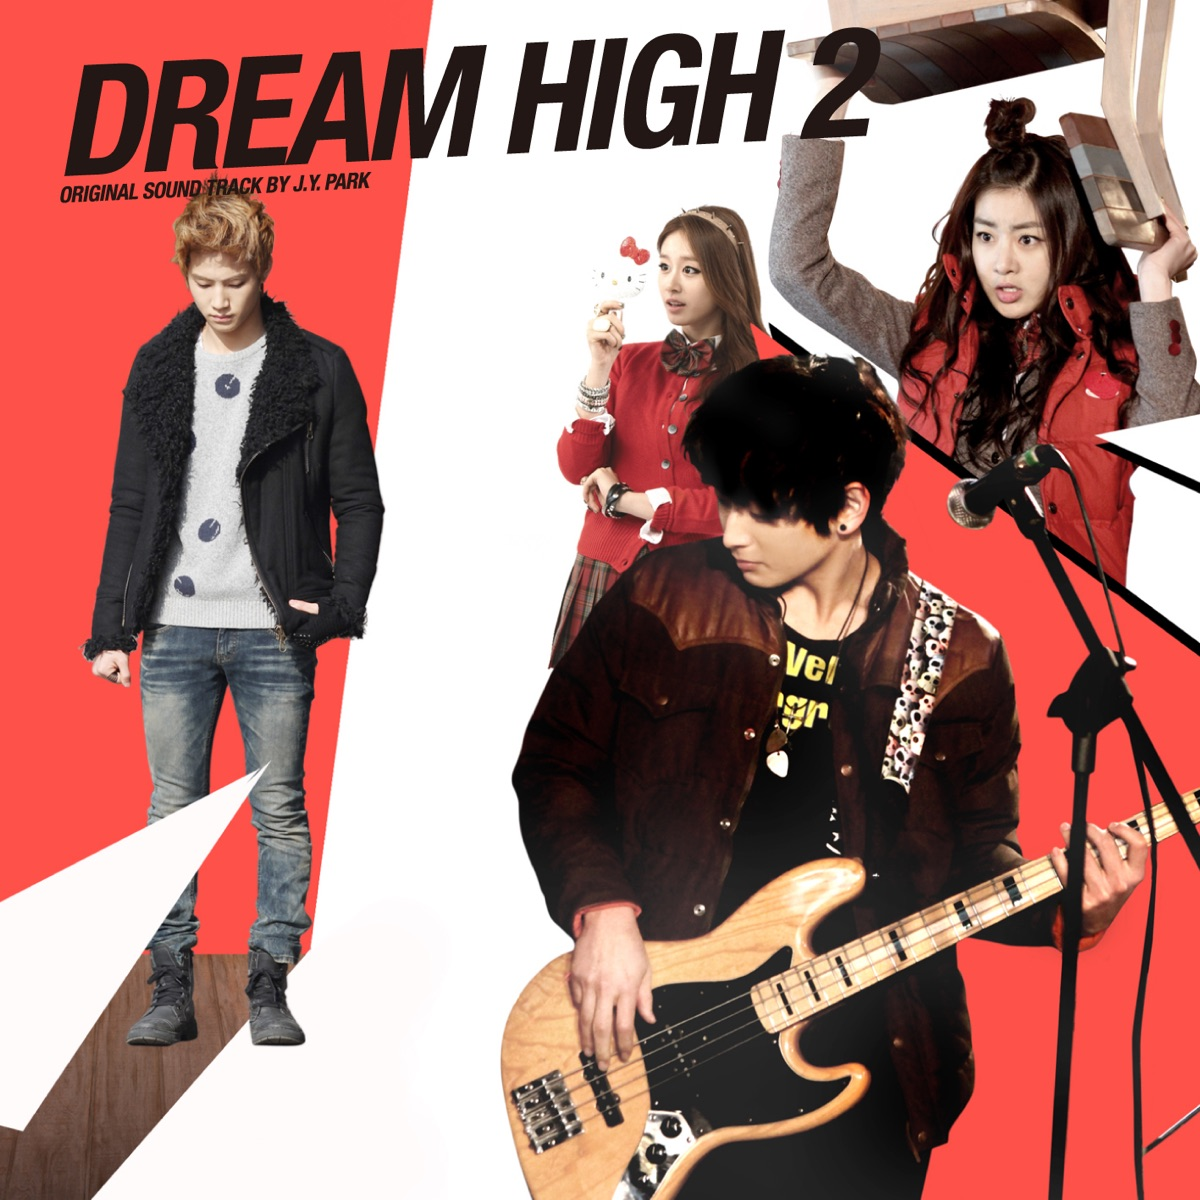 Dream High 2 Album Cover by J Y  Park